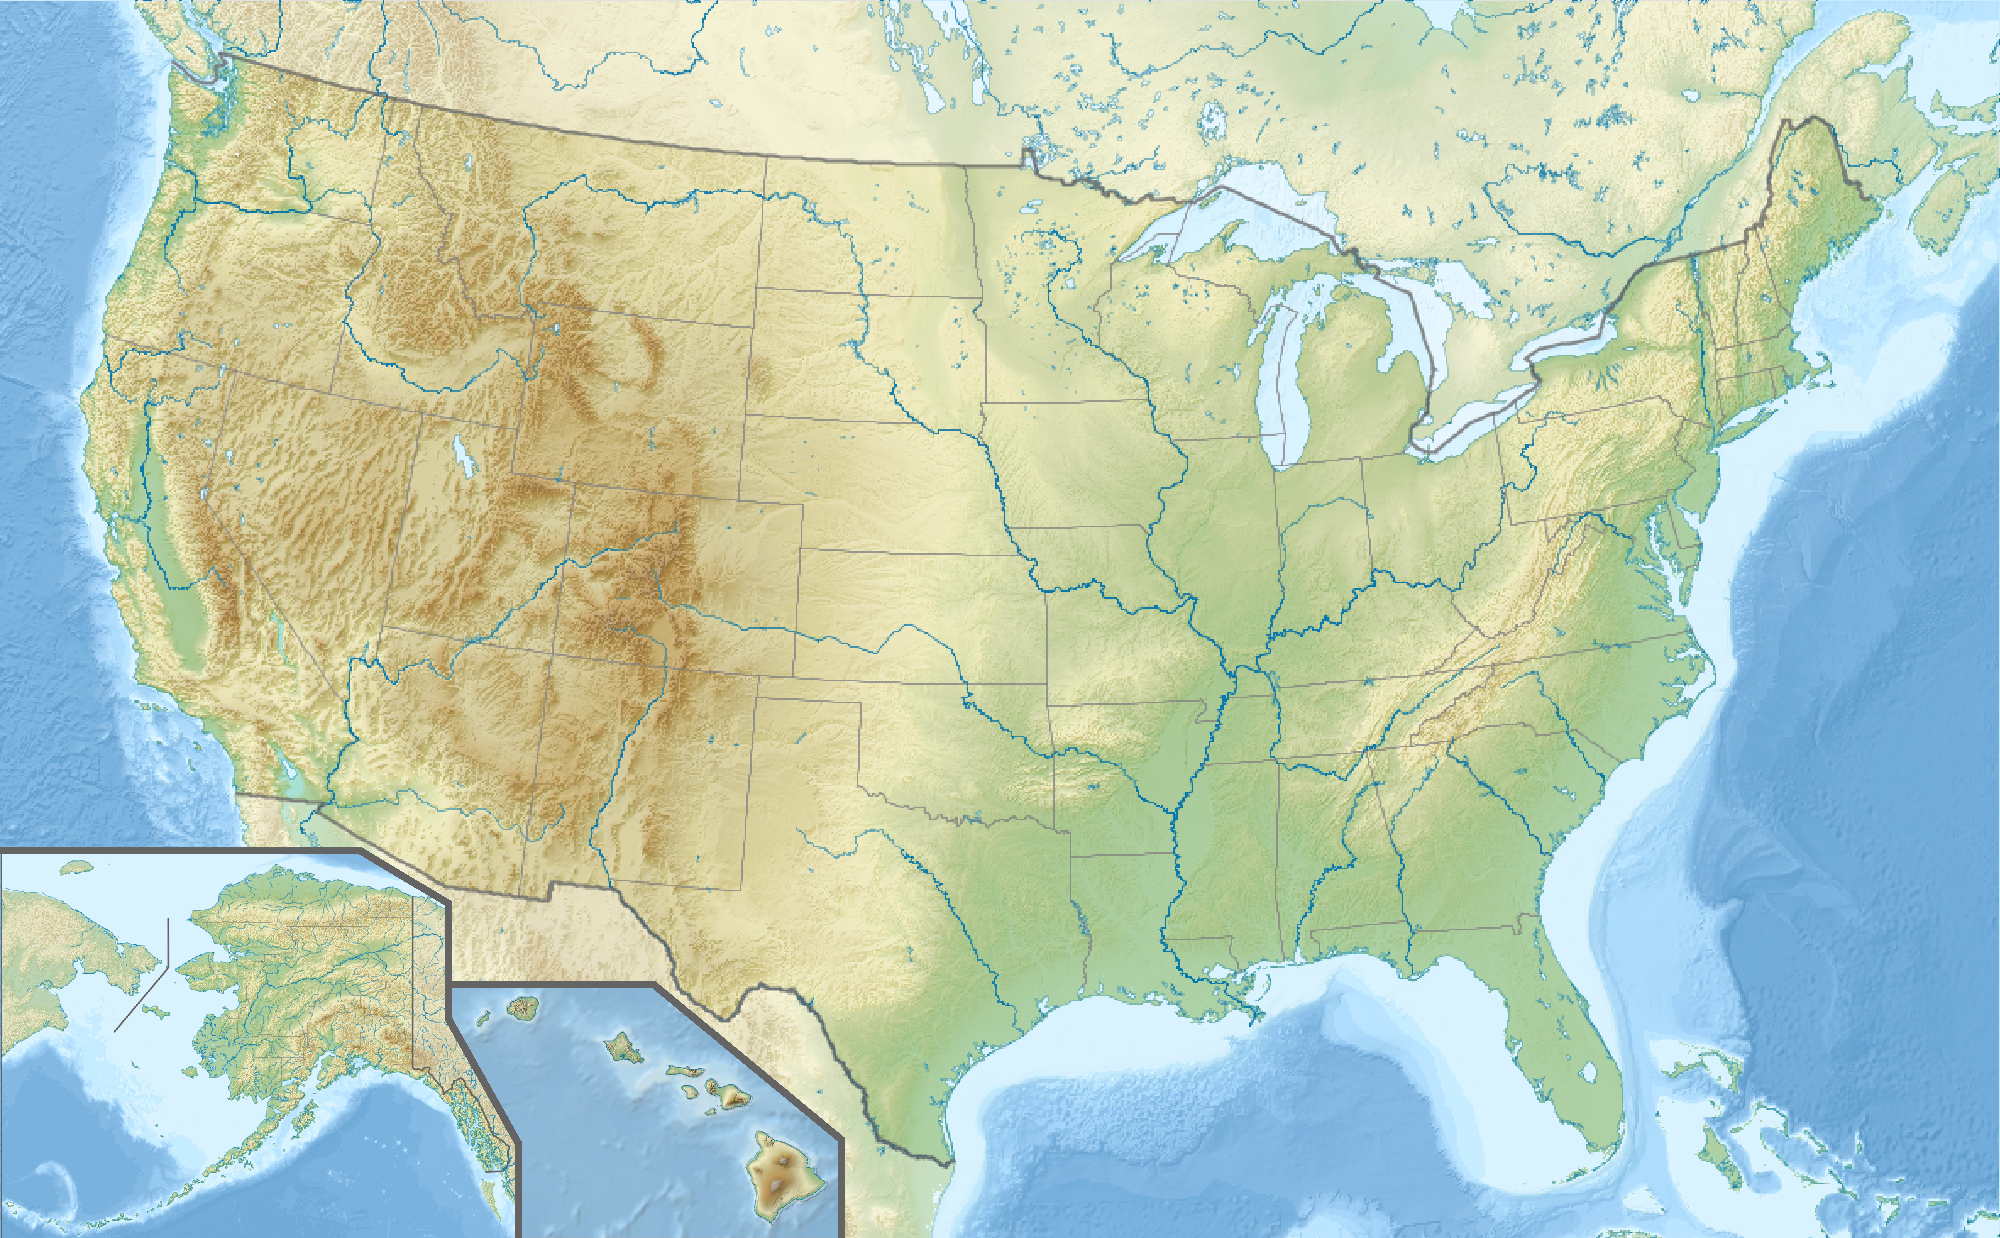 Datei:Usa edcp (+HI +AK) relief location map.png – Wikipedia